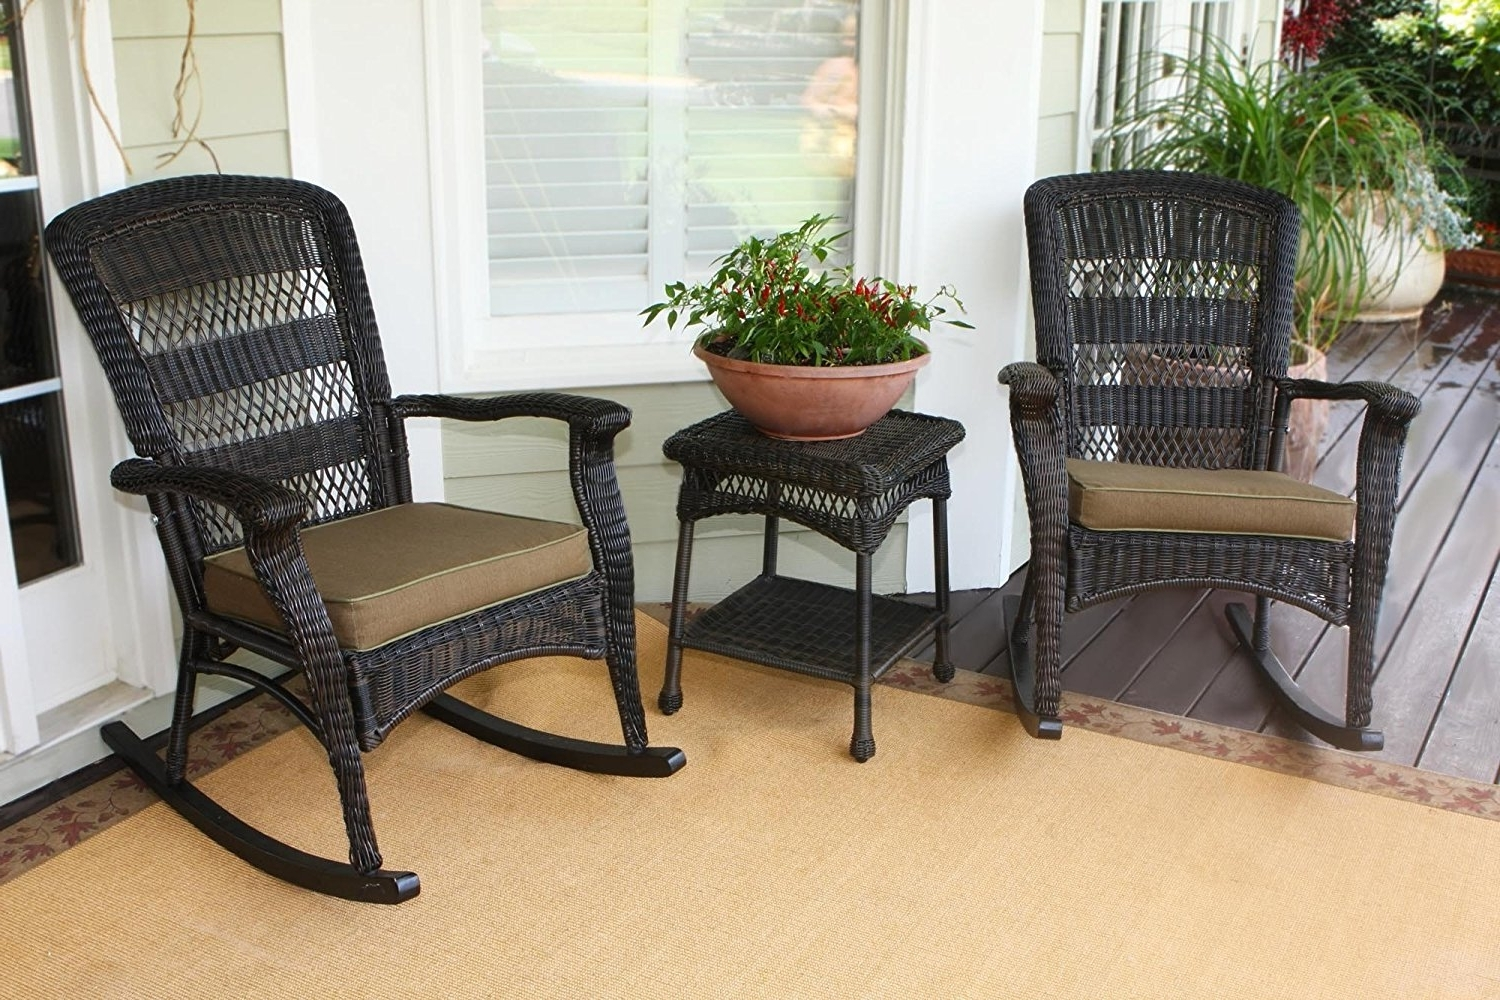 Latest Outdoor Patio Rocking Chairs Within Outdoor Wicker Rocking Chair Uk – Outdoor Designs (View 18 of 20)